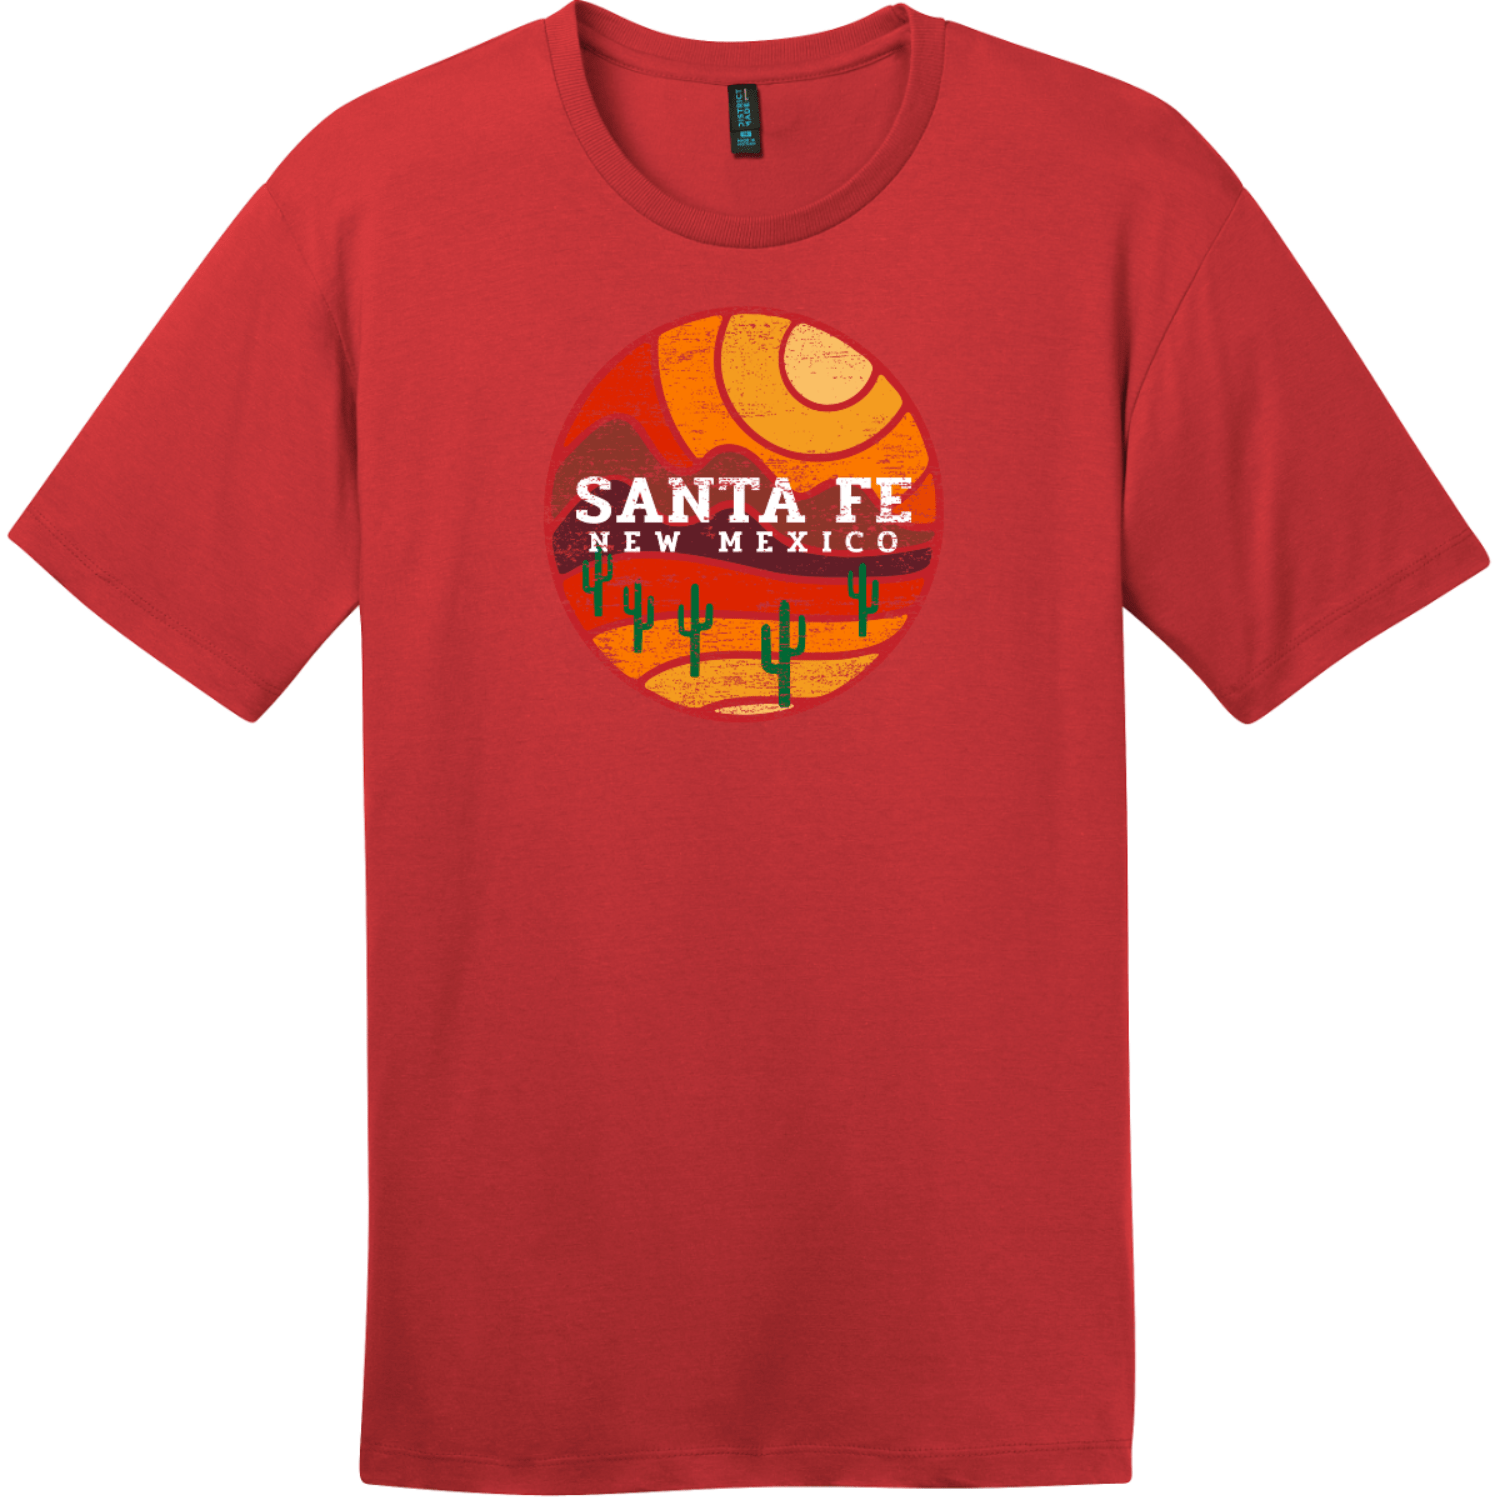 Santa Fe New Mexico Desert To Mountains Vintage T-Shirt Classic Red District Perfect Weight Tee DT104